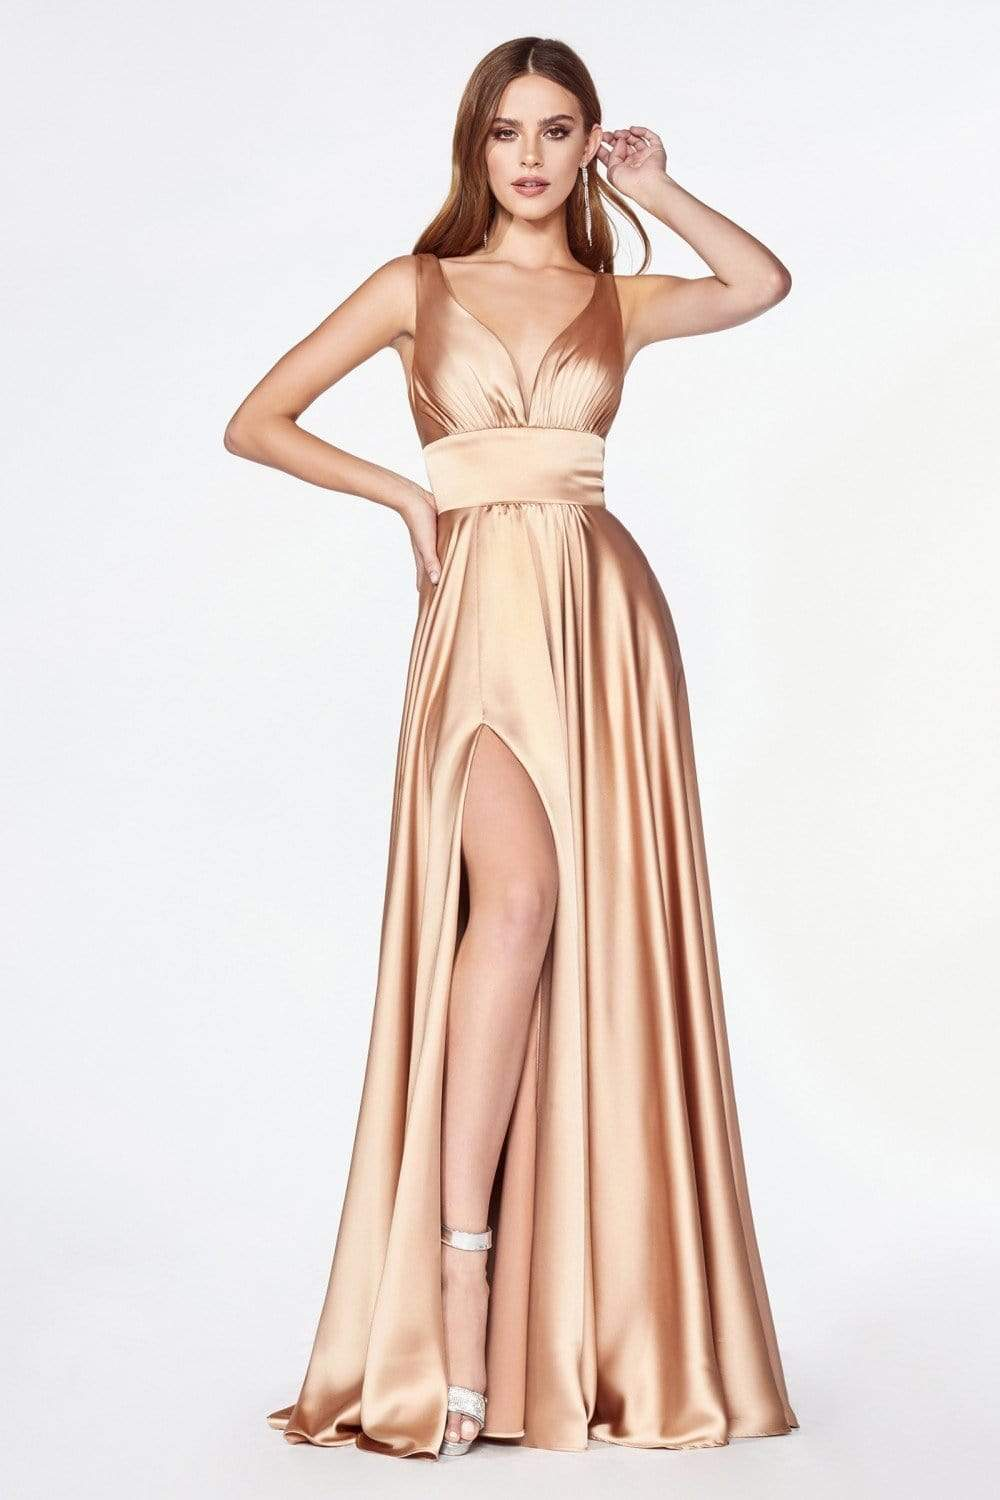 Cinderella Divine - 7469 Sleeveless V Neck Flowing Satin Gown in Gold